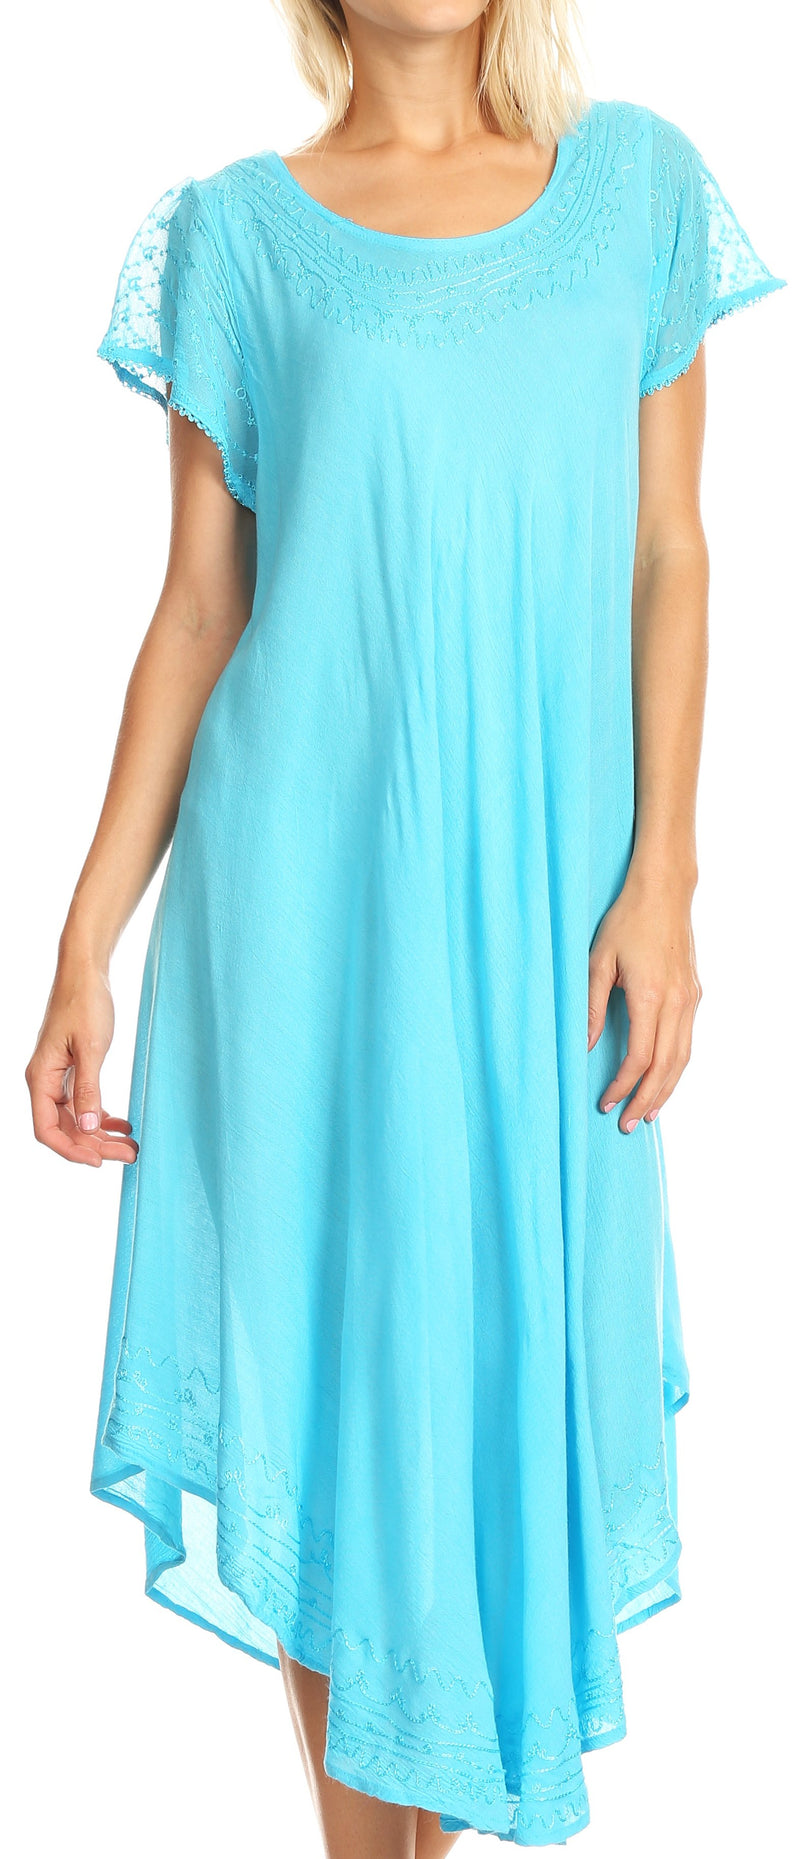 Sakkas Everyday Essentials Cap Sleeve Caftan Dress / Cover Up